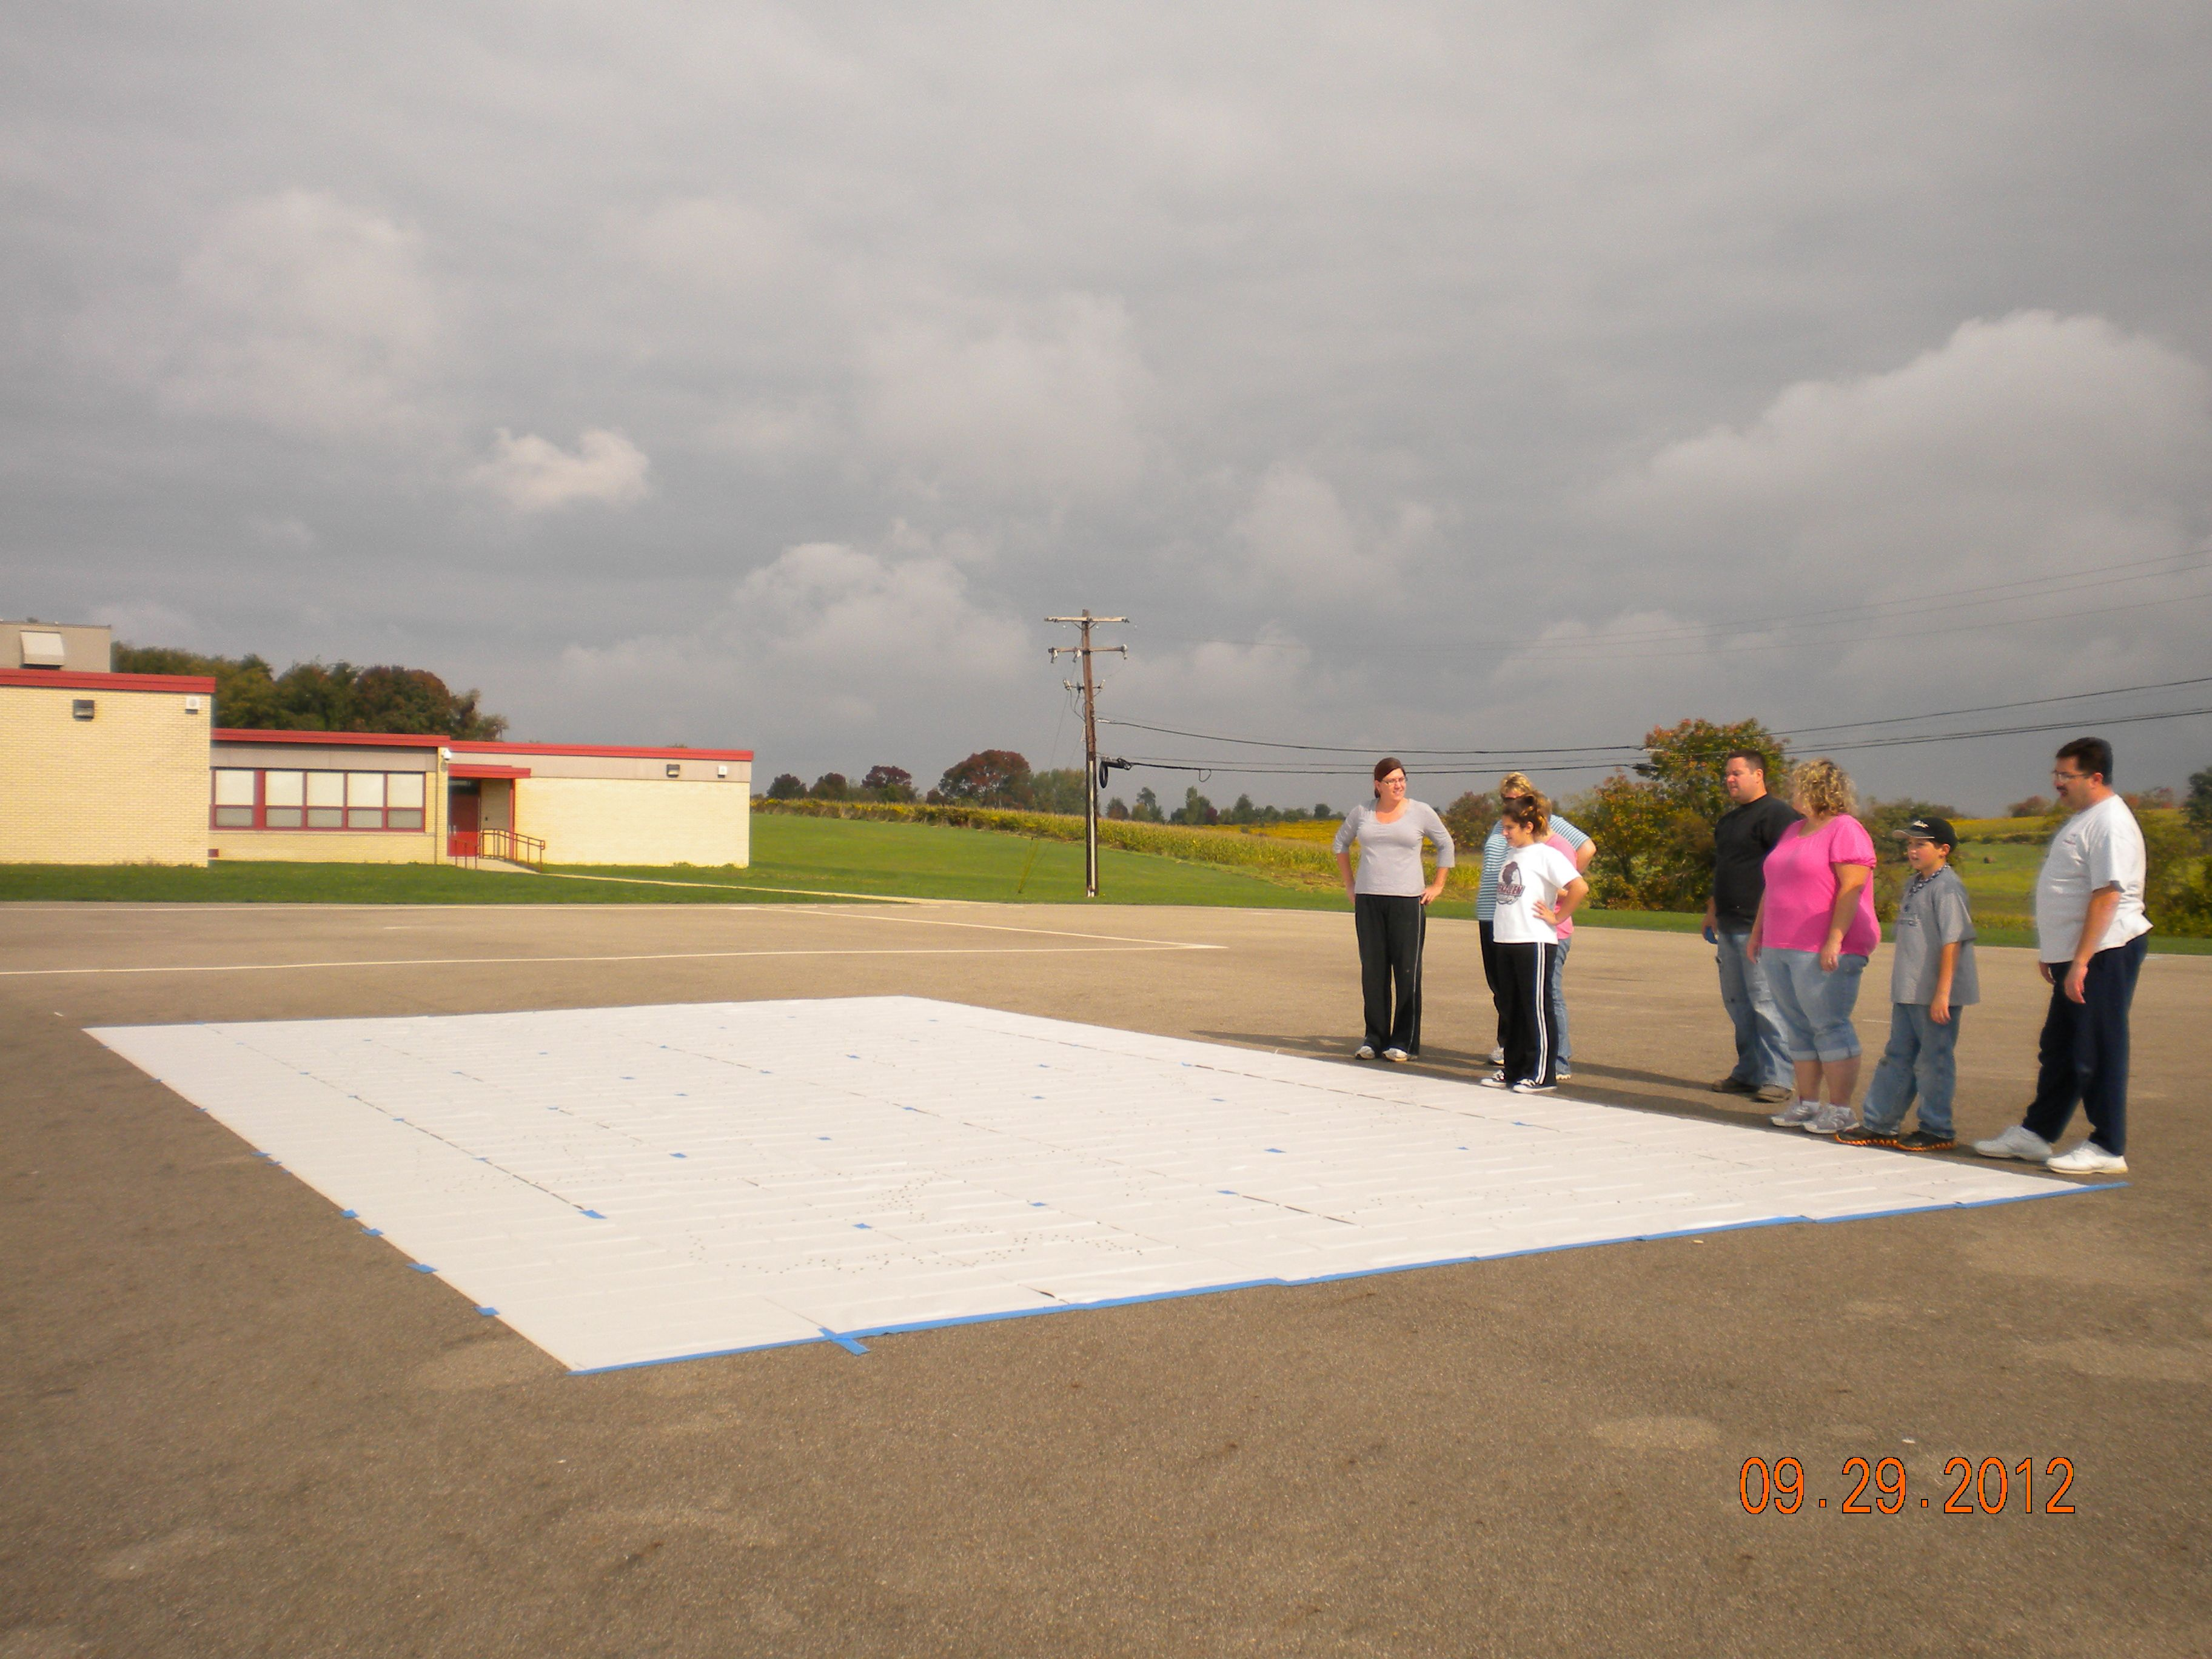 Paint day at Menallen Elementary School in Uniontown, PA